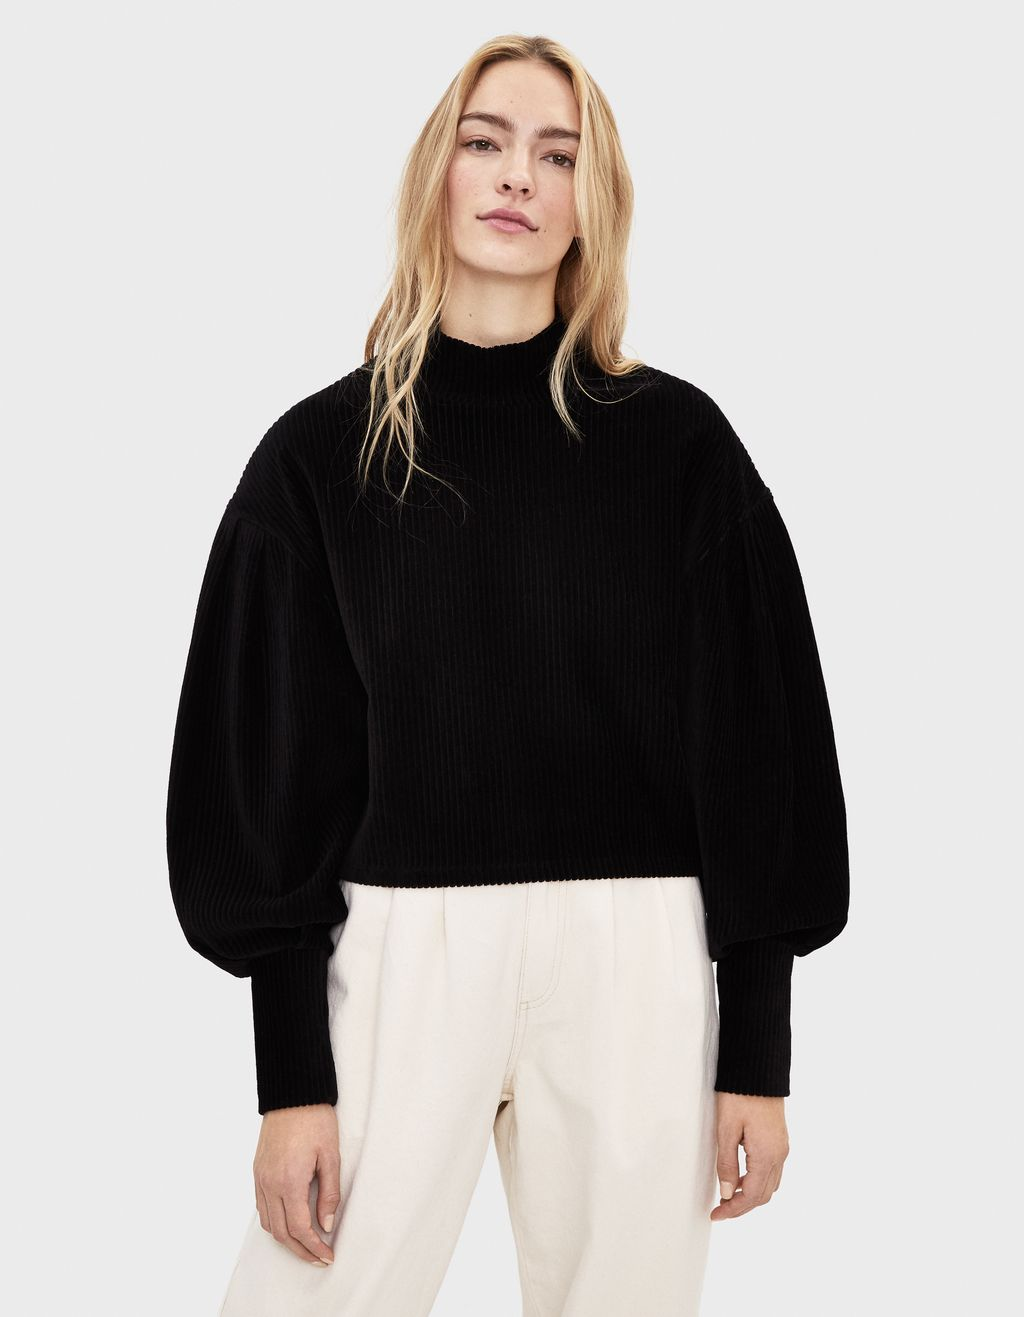 Voluminous corduroy sweater